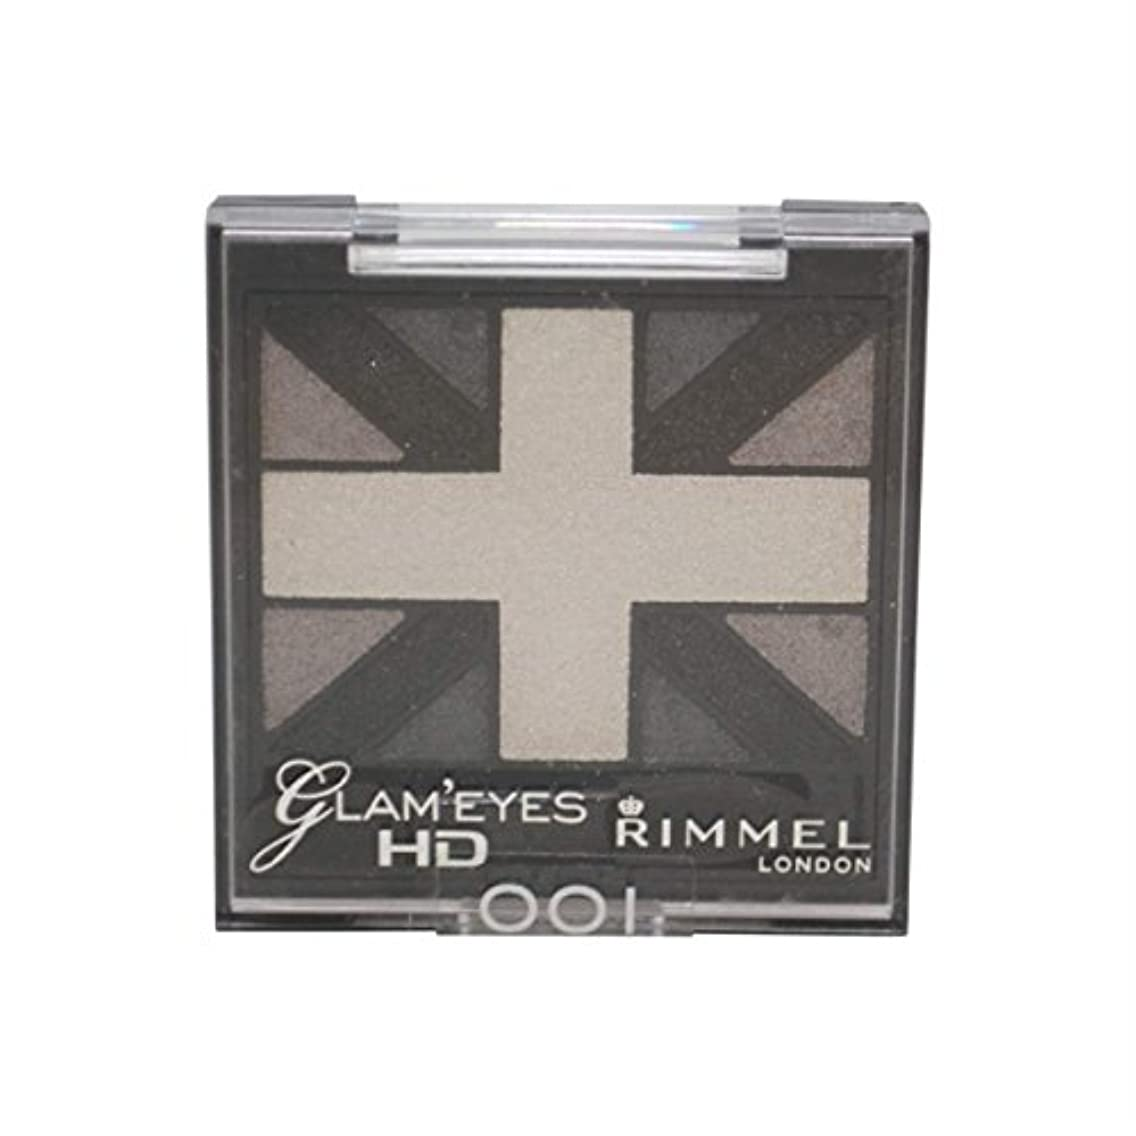 調和ベルトぐったりRIMMEL LONDON Glam'Eyes HD Eyeshadows Black Cab (並行輸入品)